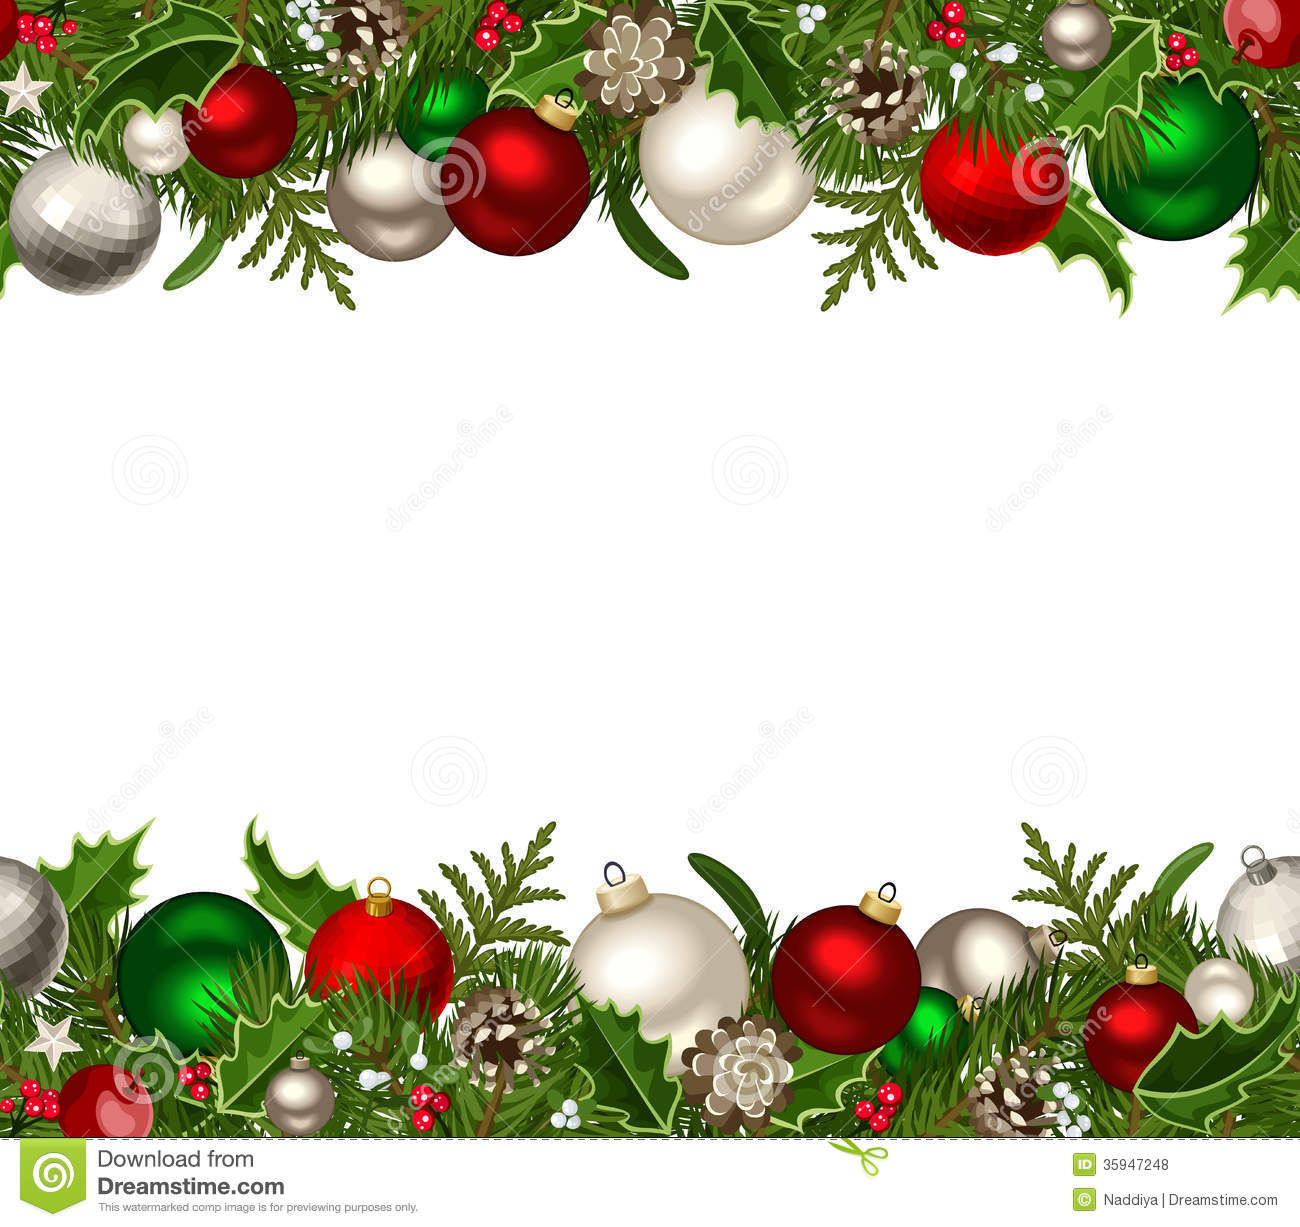 Christmas Horizontal Seamless Background With Red And Silver Balls